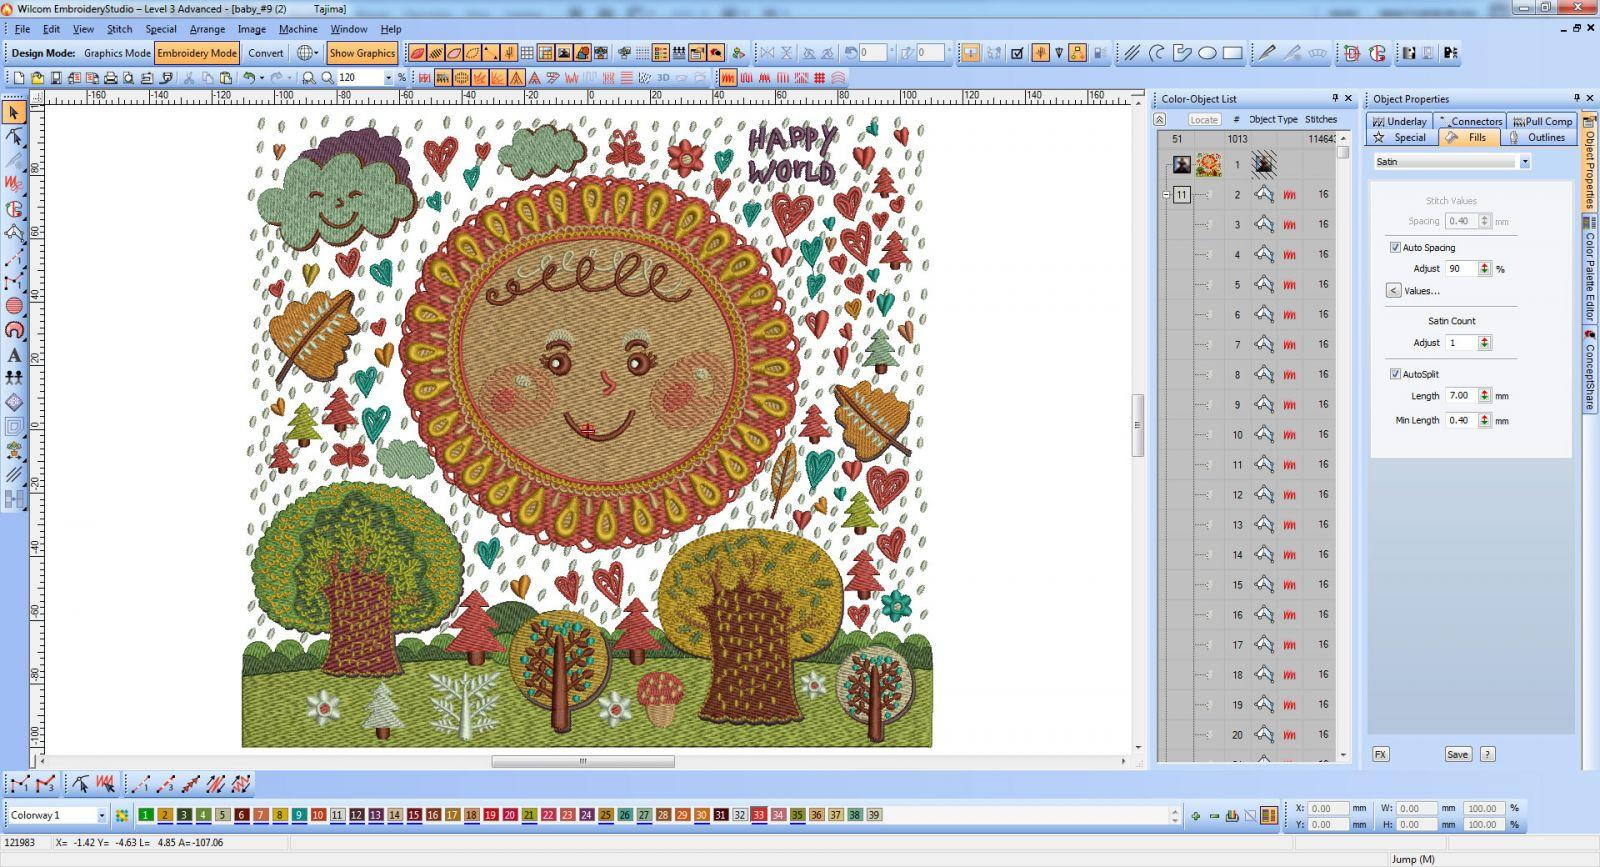 Baby embroidery for quilt screenshot at Wilcom software